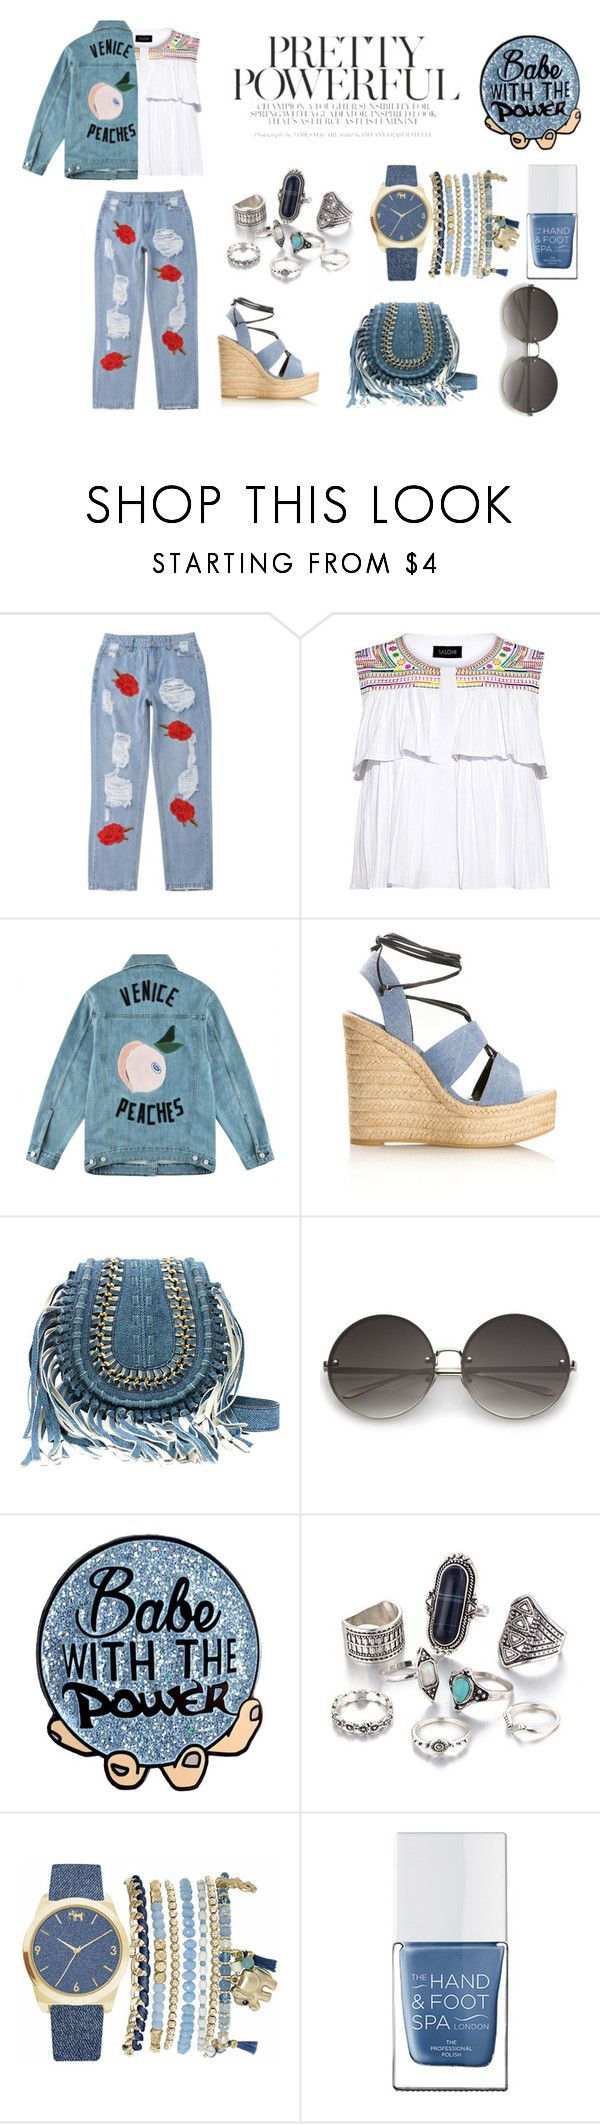 """""""COACHELLA"""" by rasberry893 on Polyvore featuring Saloni, Être Cécile, Yves Saint Laurent, Mixit and The Hand & Foot Spa"""